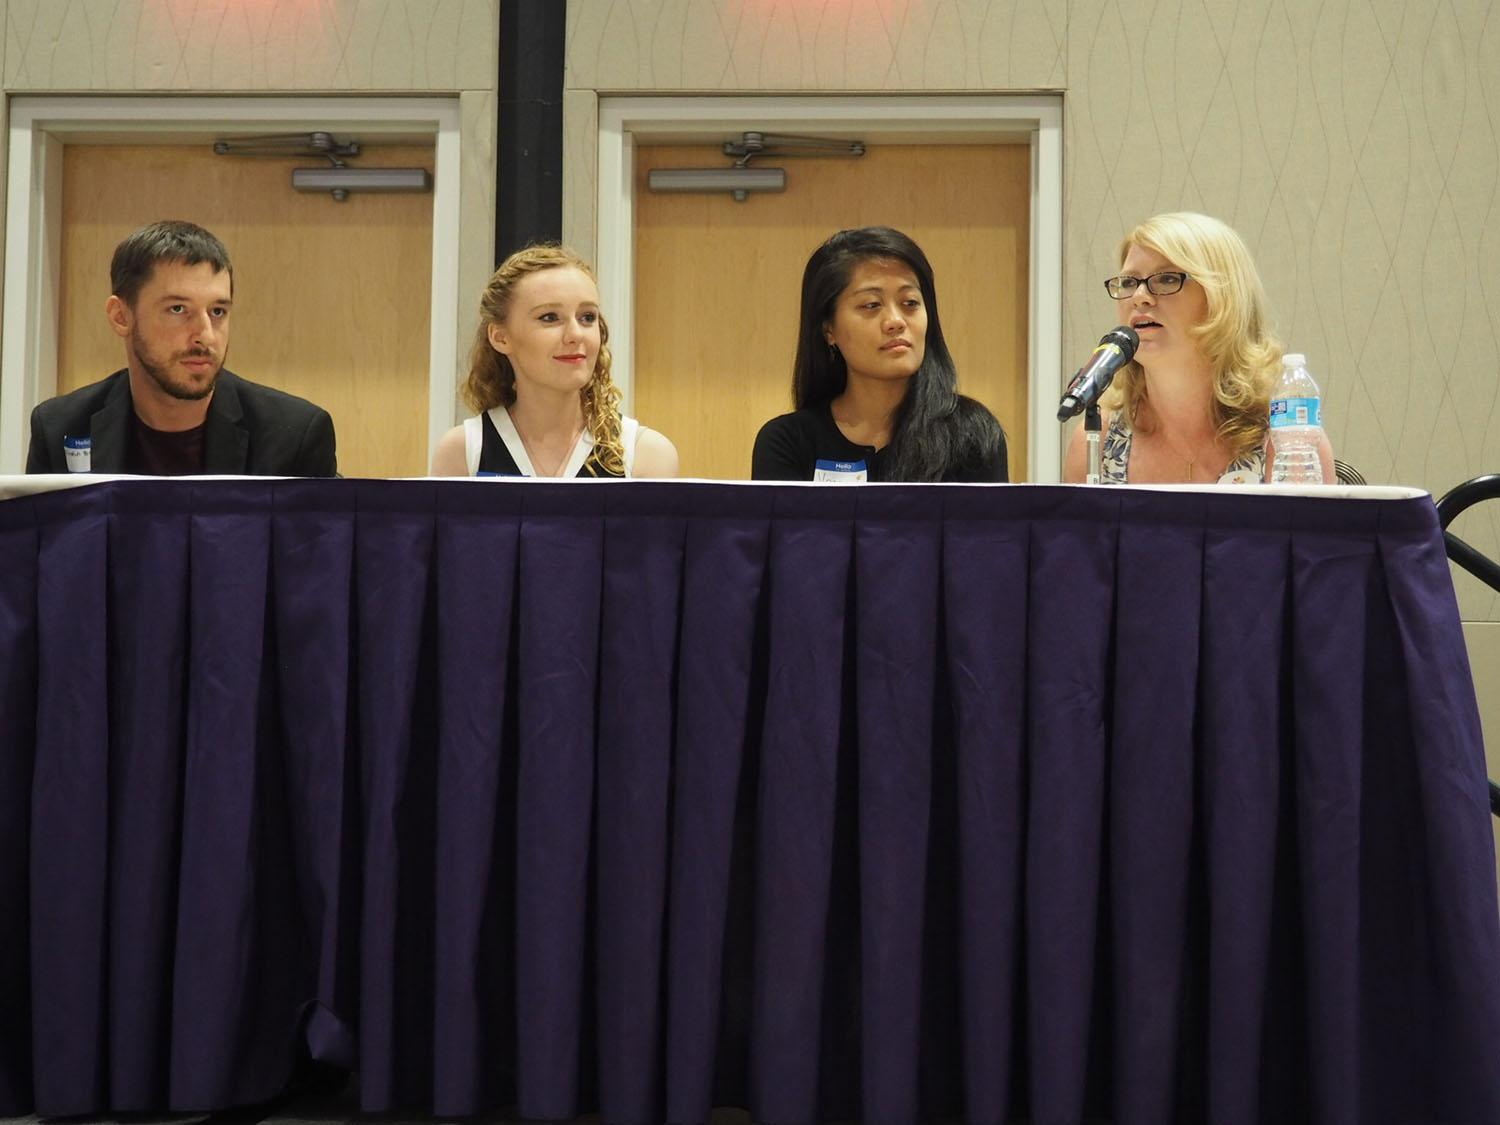 Dustin Brennan, Mackenzie    Holst, Vanna Ngo, and Amber Jackson served as panelist for the millennial perspectives panel.